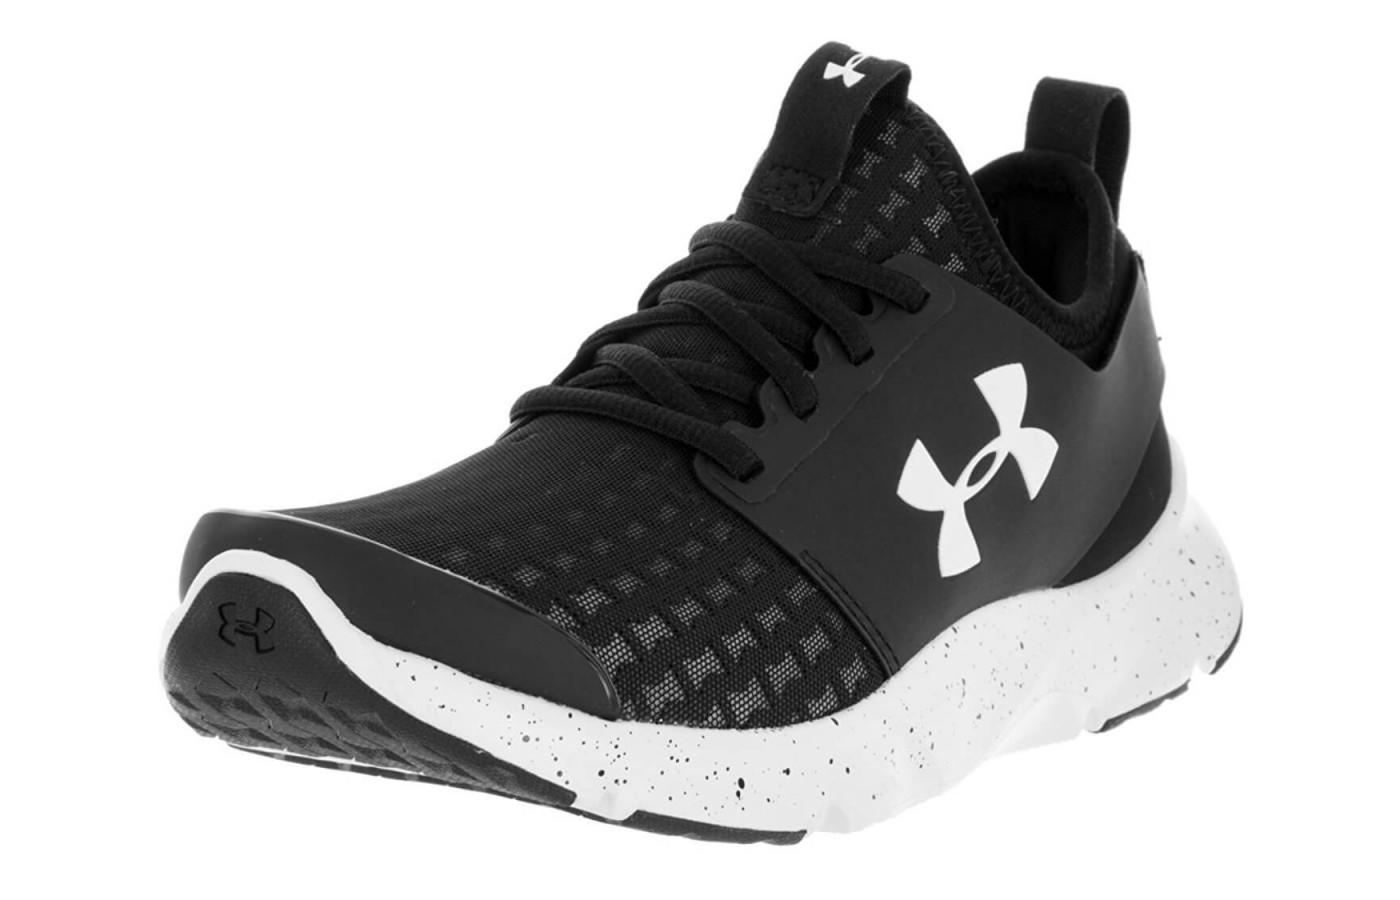 An in depth review of the light weight Under Armour Drift